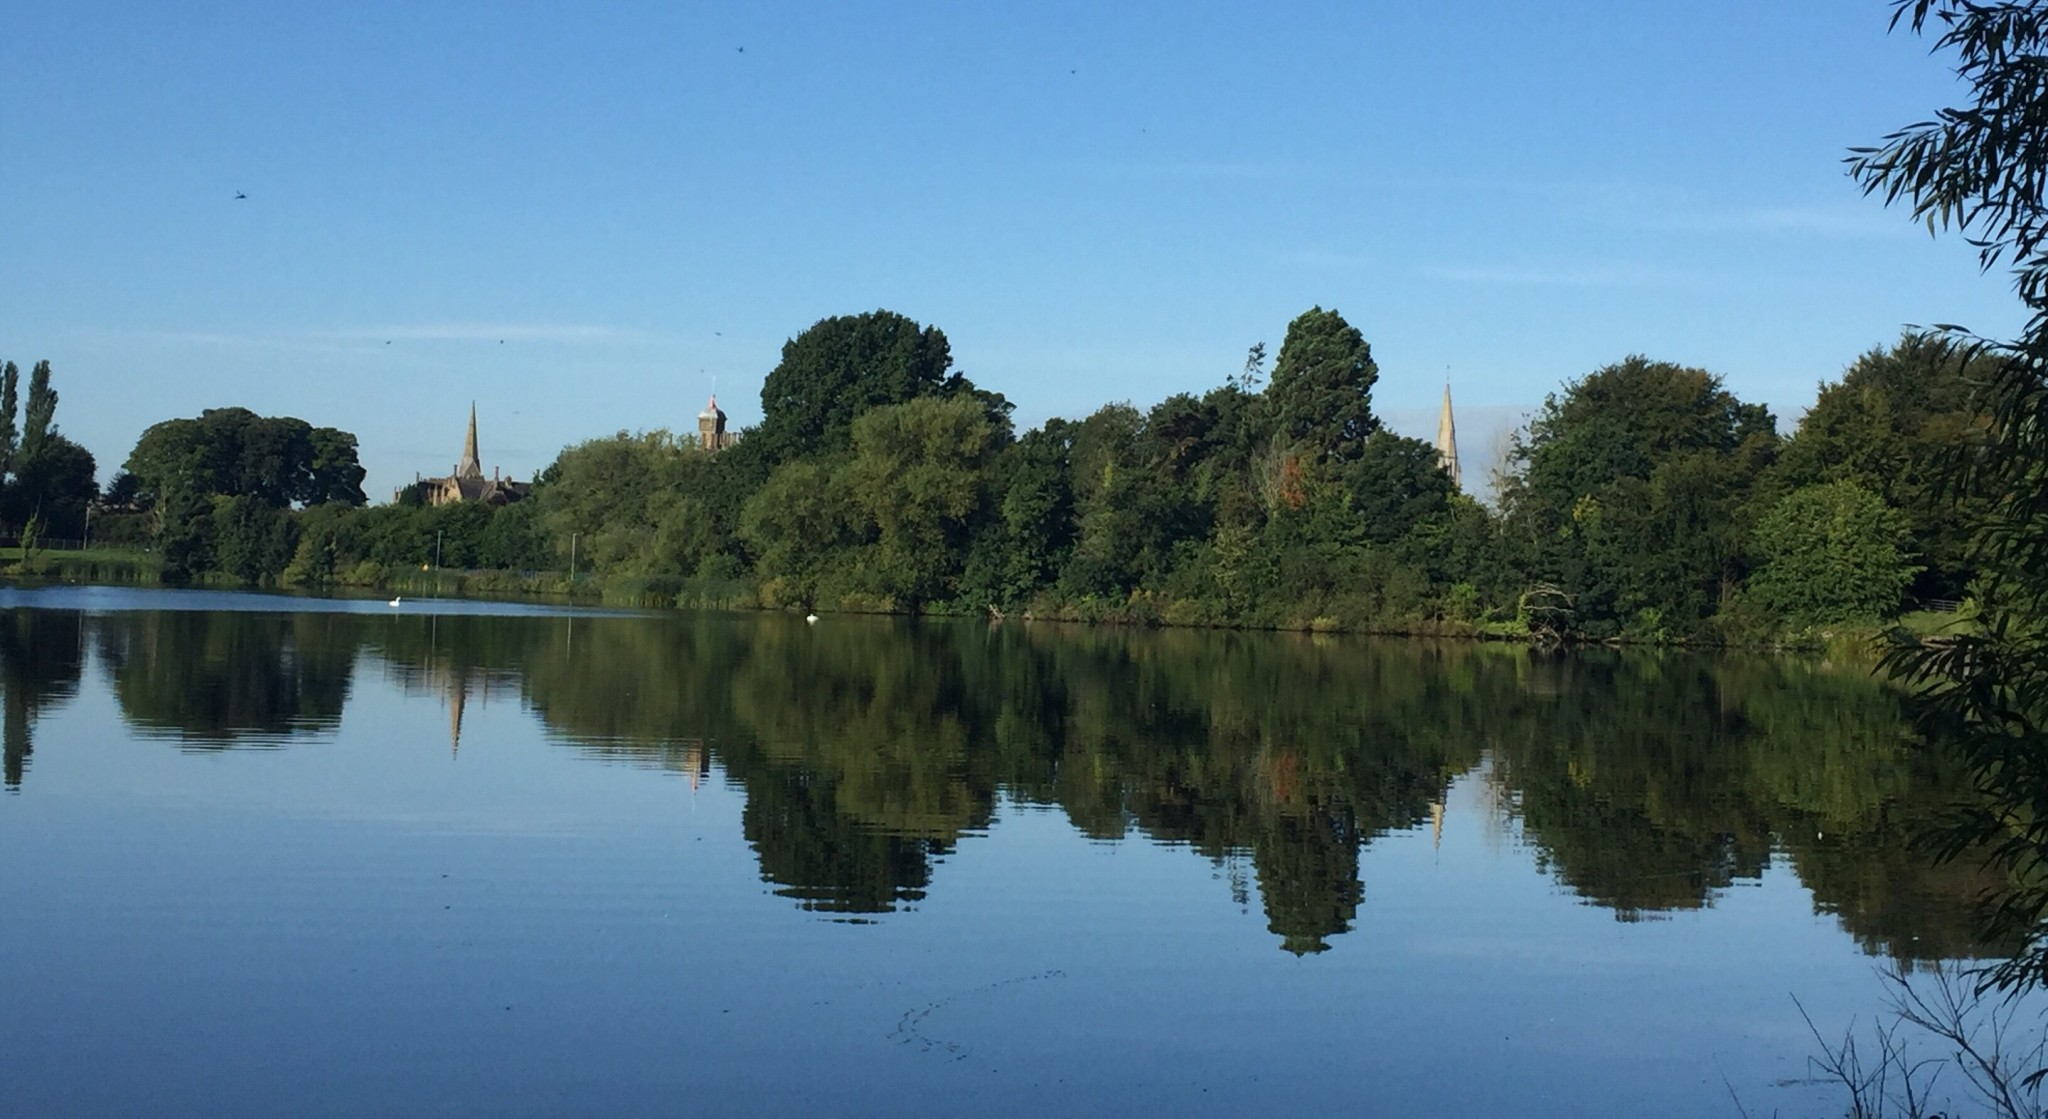 Lurgan Park Photography Competition